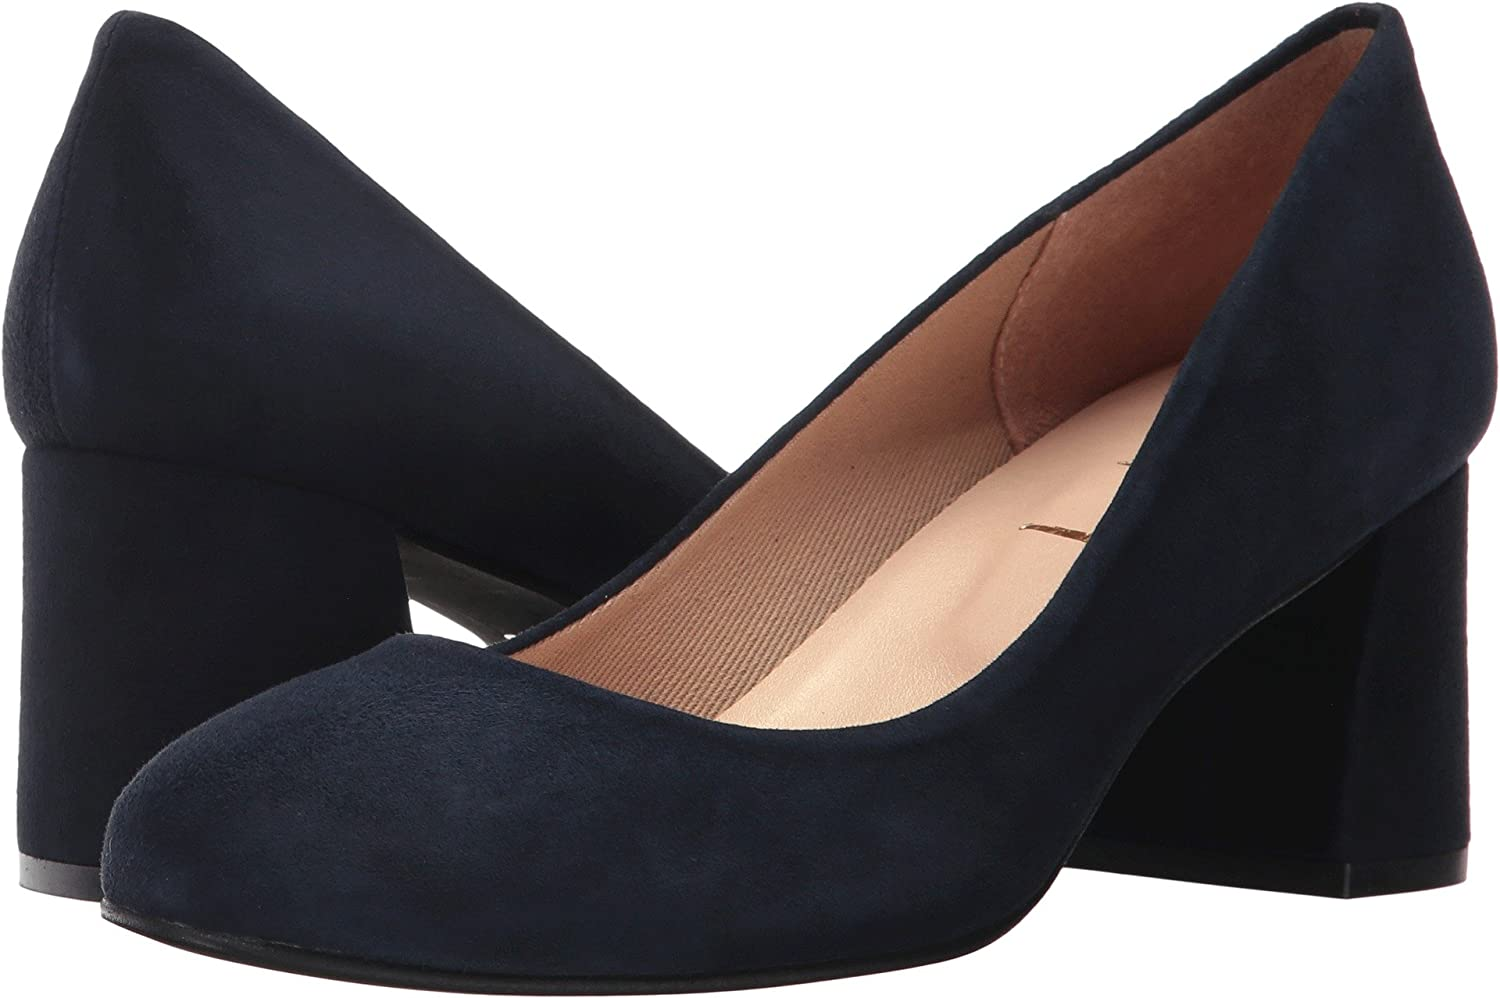 French Sole Womens Trance Suede Round Toe Classic Pumps B06Y24VWZ8 6.5 B(M) US|Navy Suede